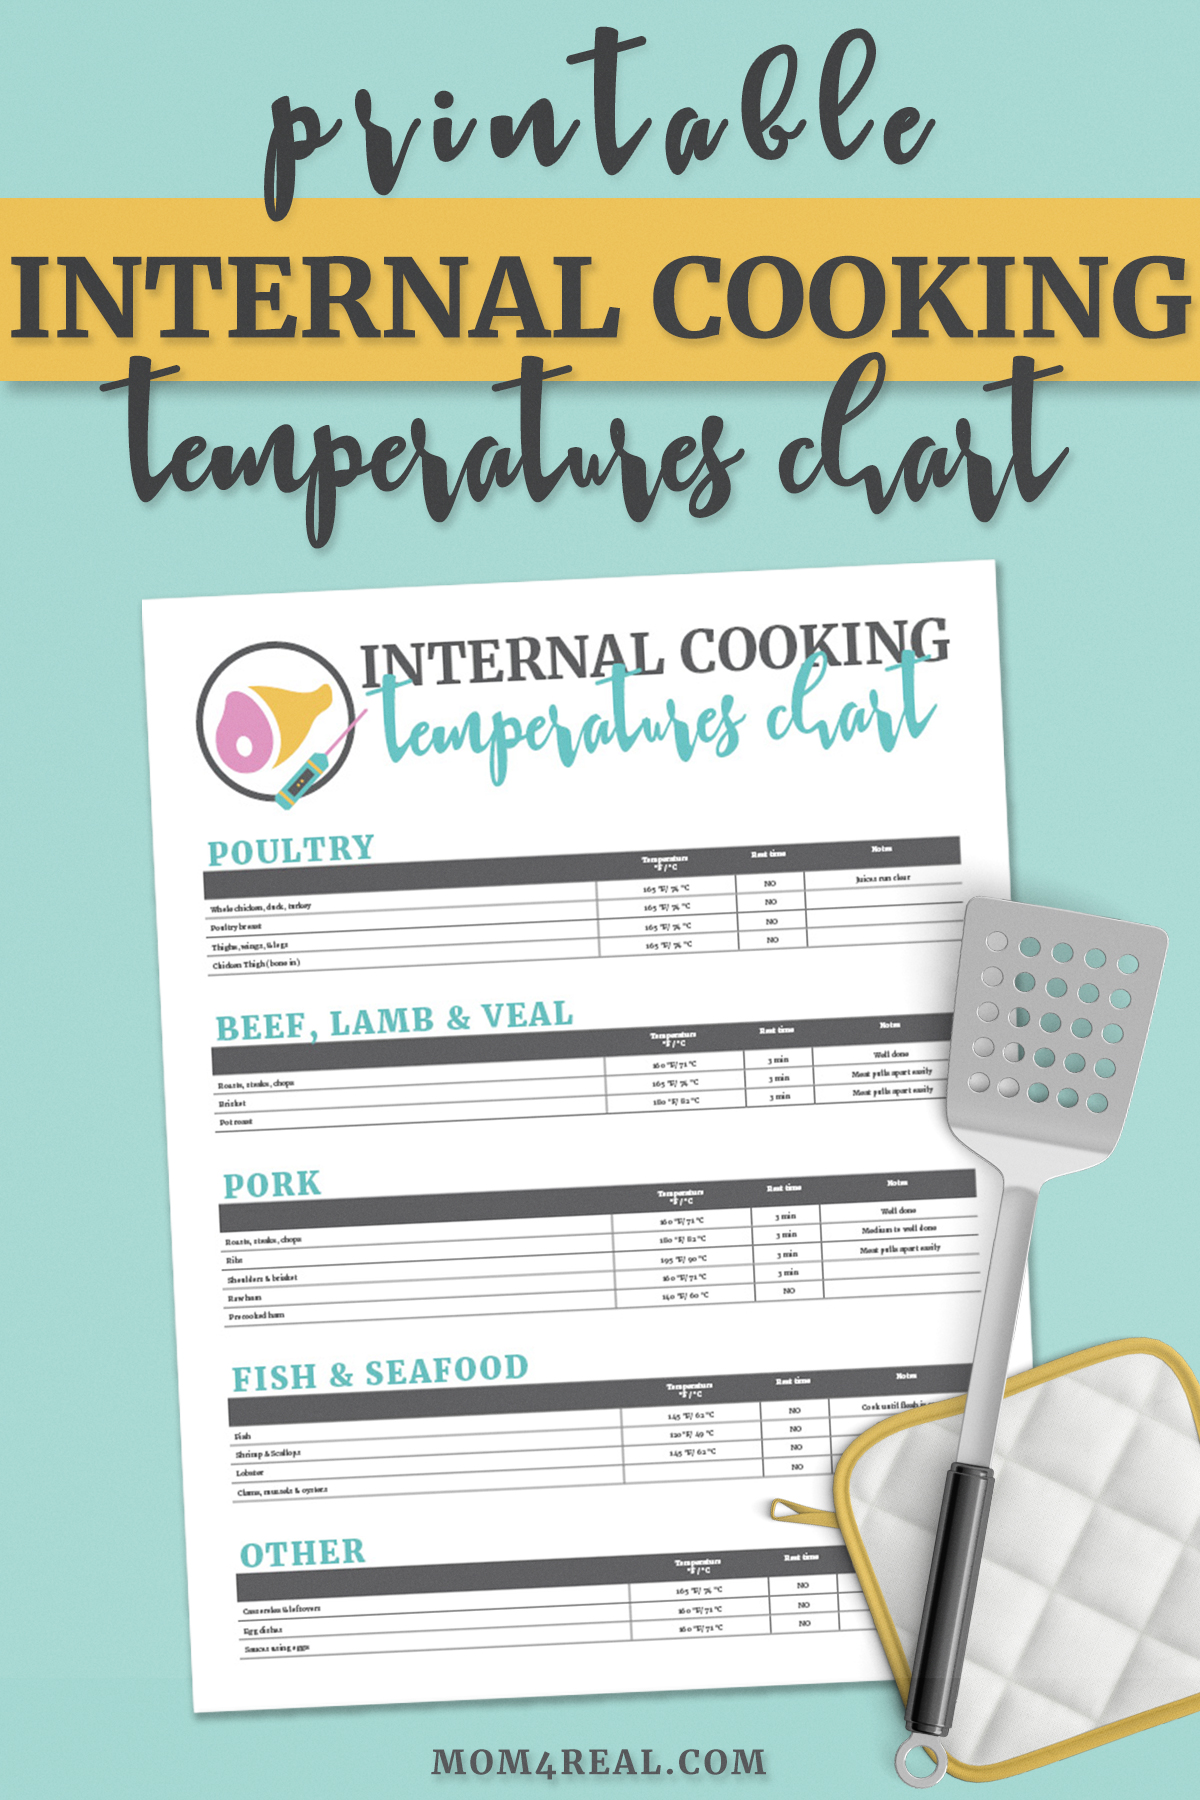 Printable Meat Temperature Safety Chart And Food Safety Tips